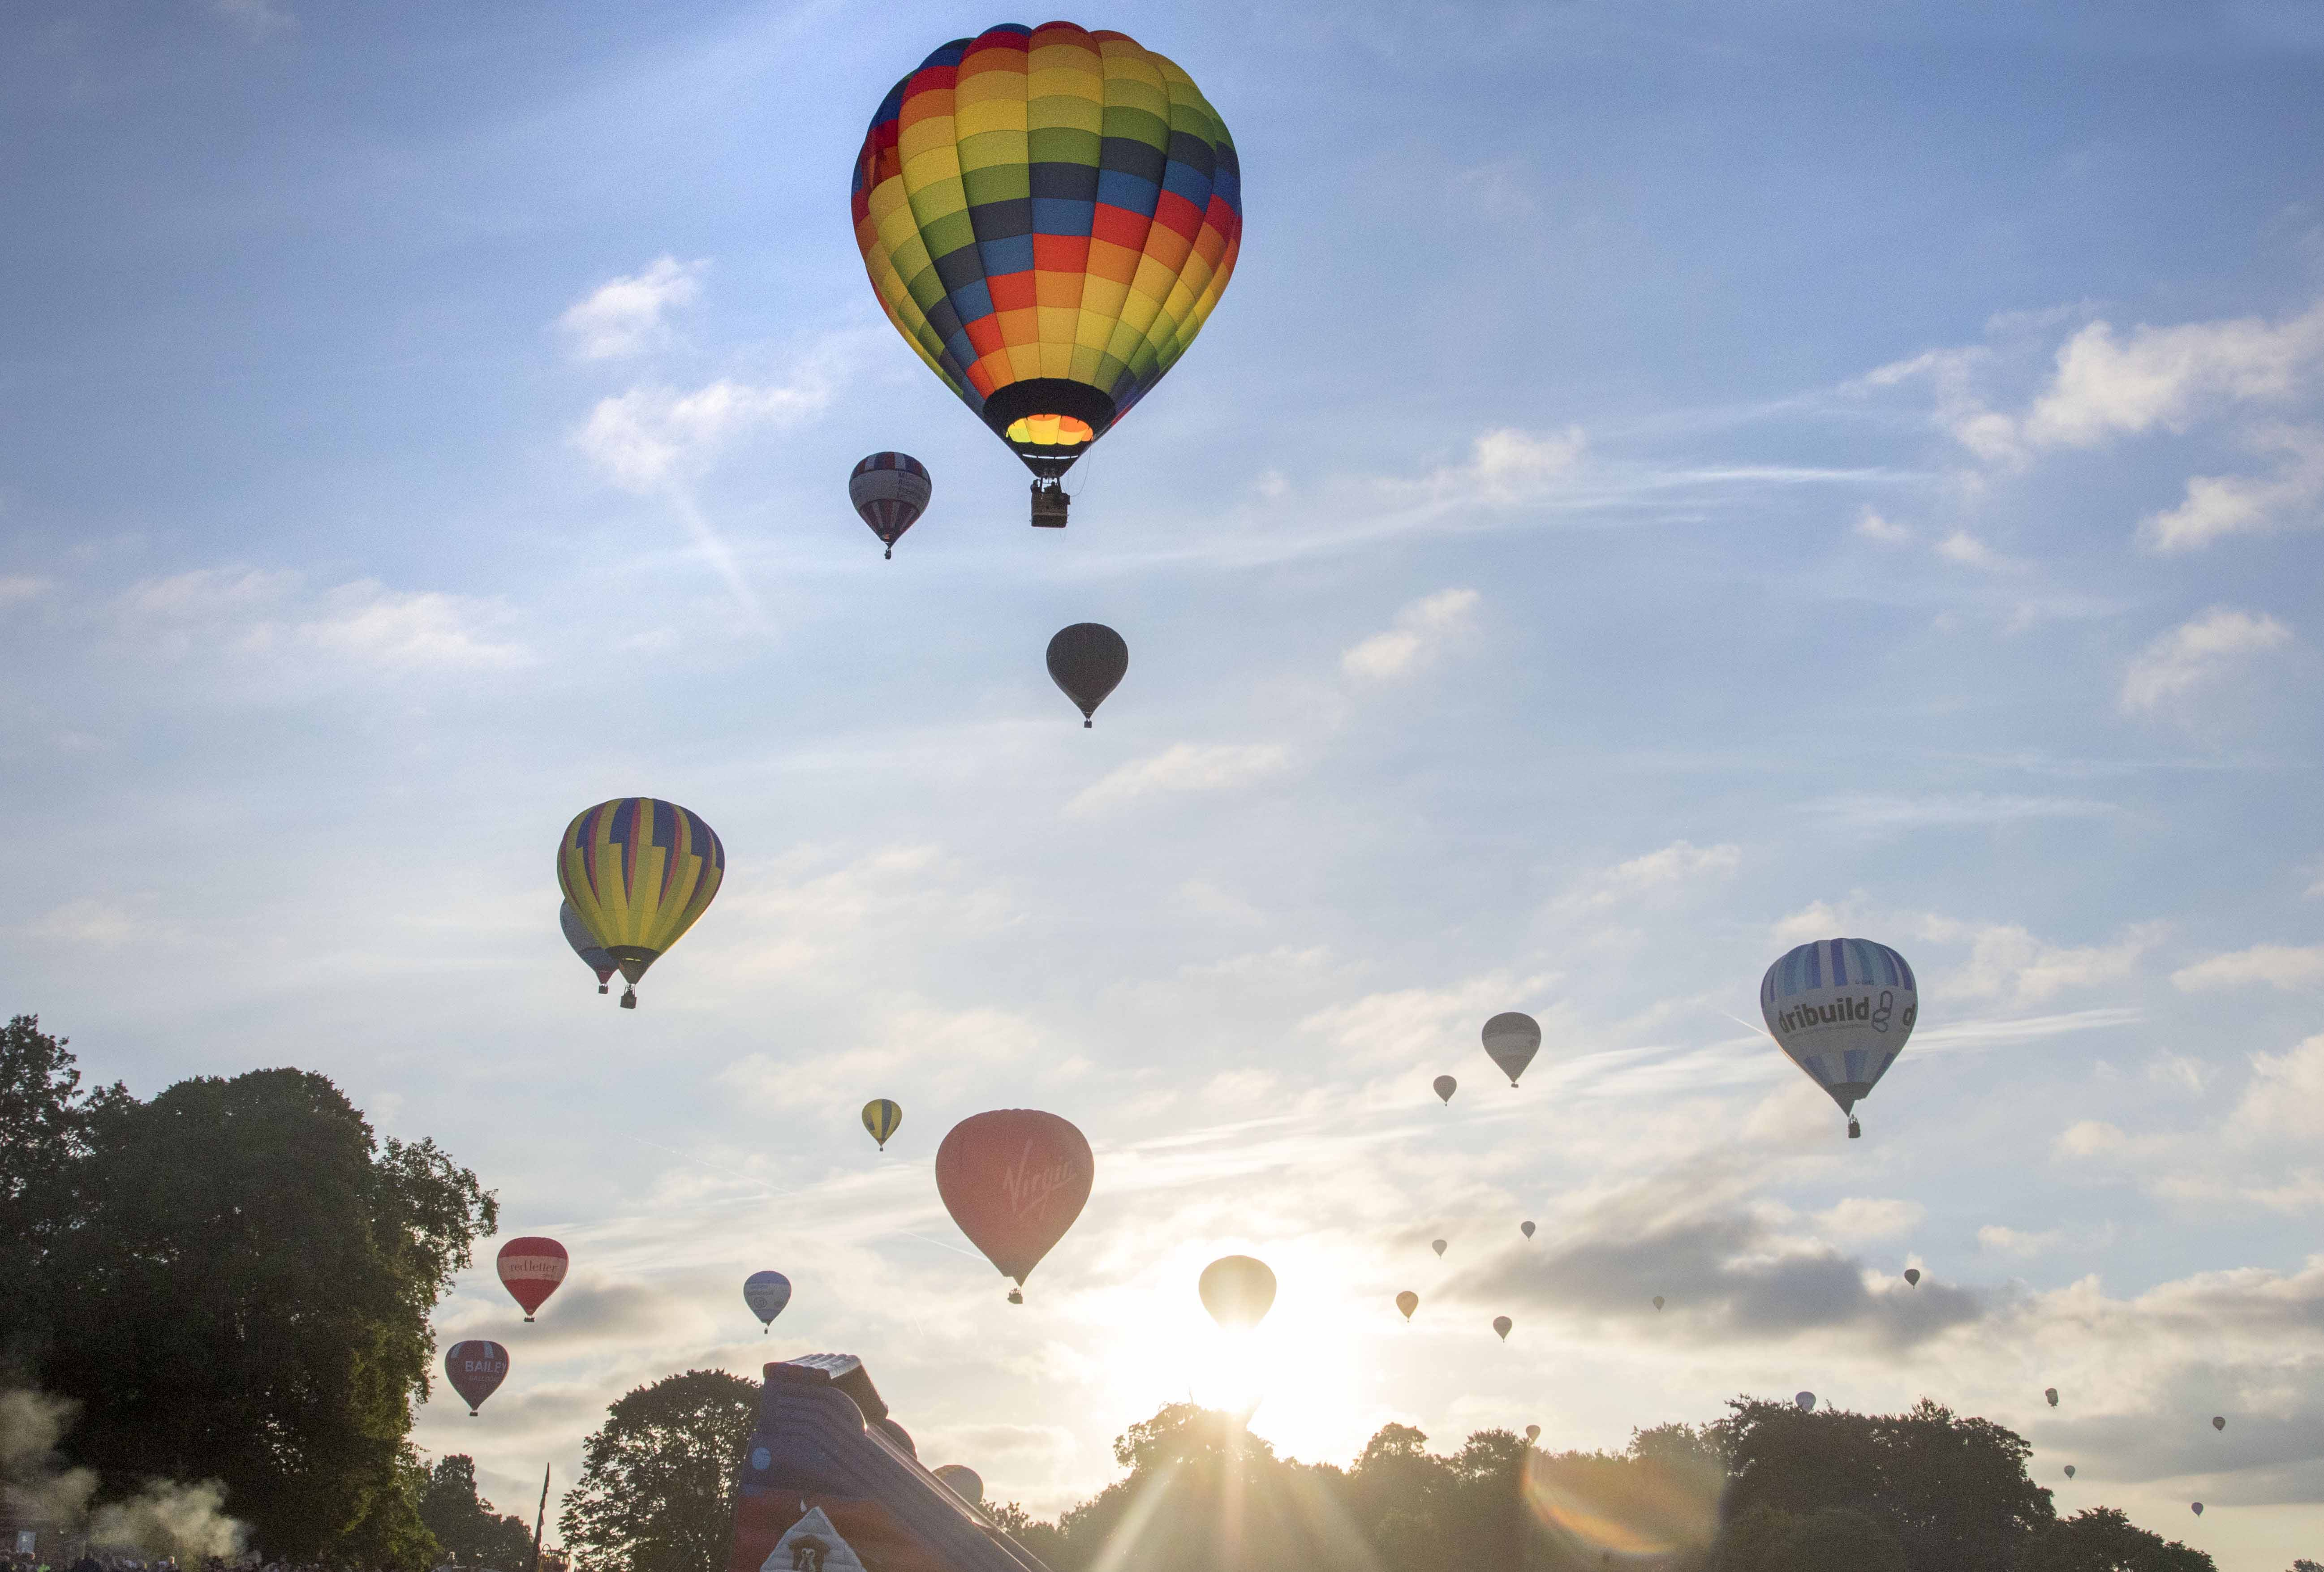 Bristol International Balloon Fiesta. Image credit paulbox© framedogs